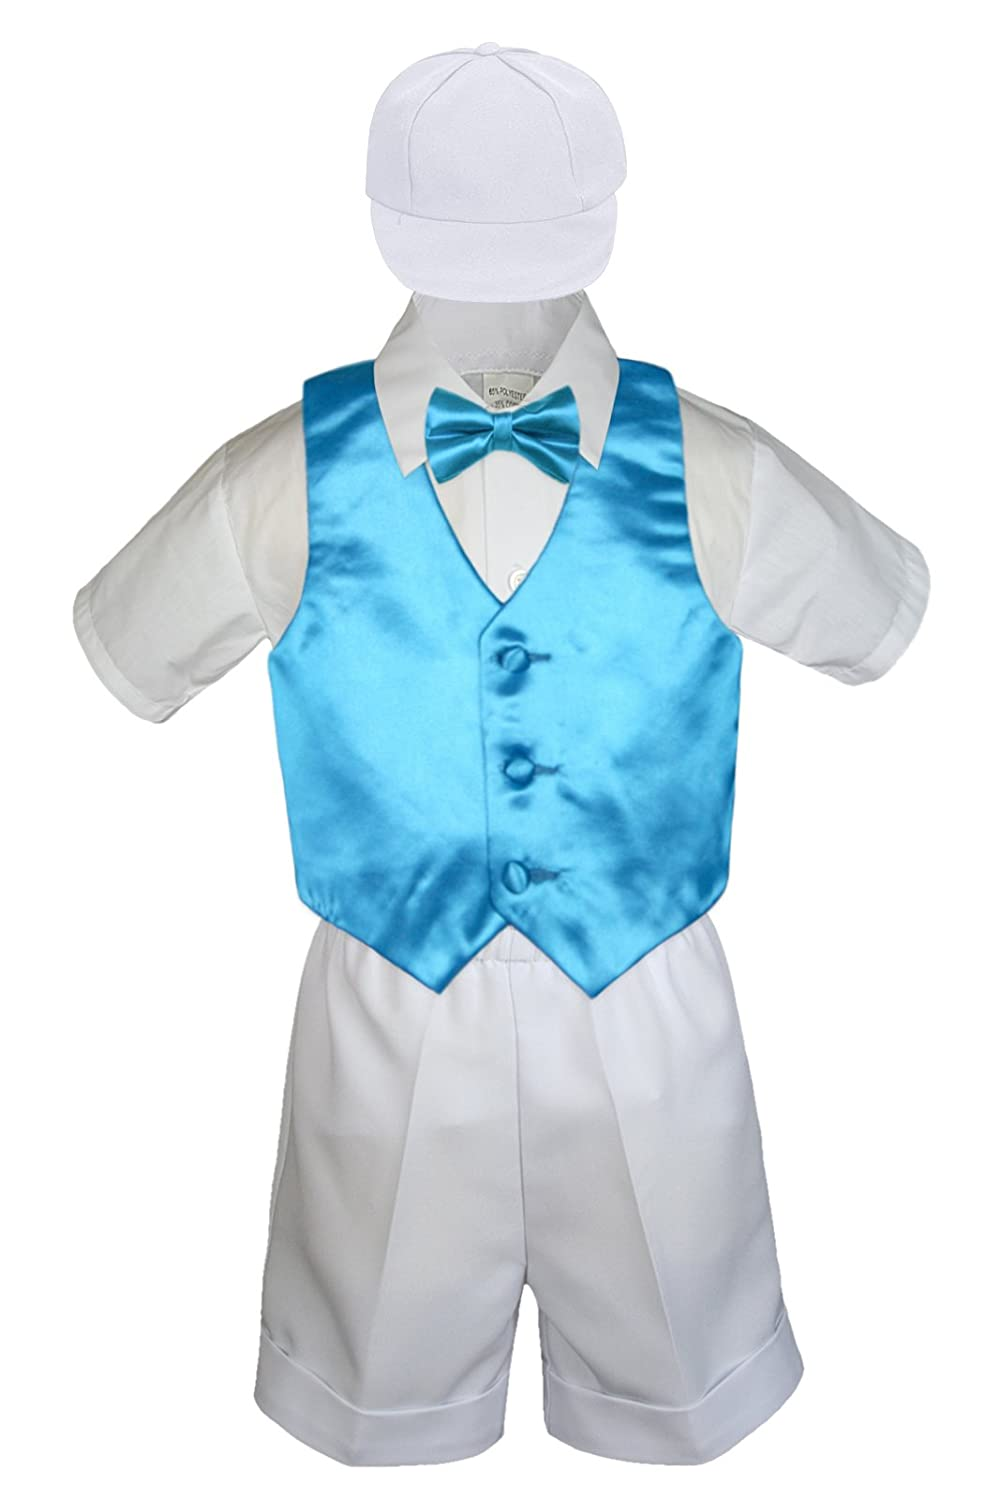 5pc Baby Toddler Boys Turquoise Fresno Mall Blue Suit Vest Tie Bow Set White Dealing full price reduction